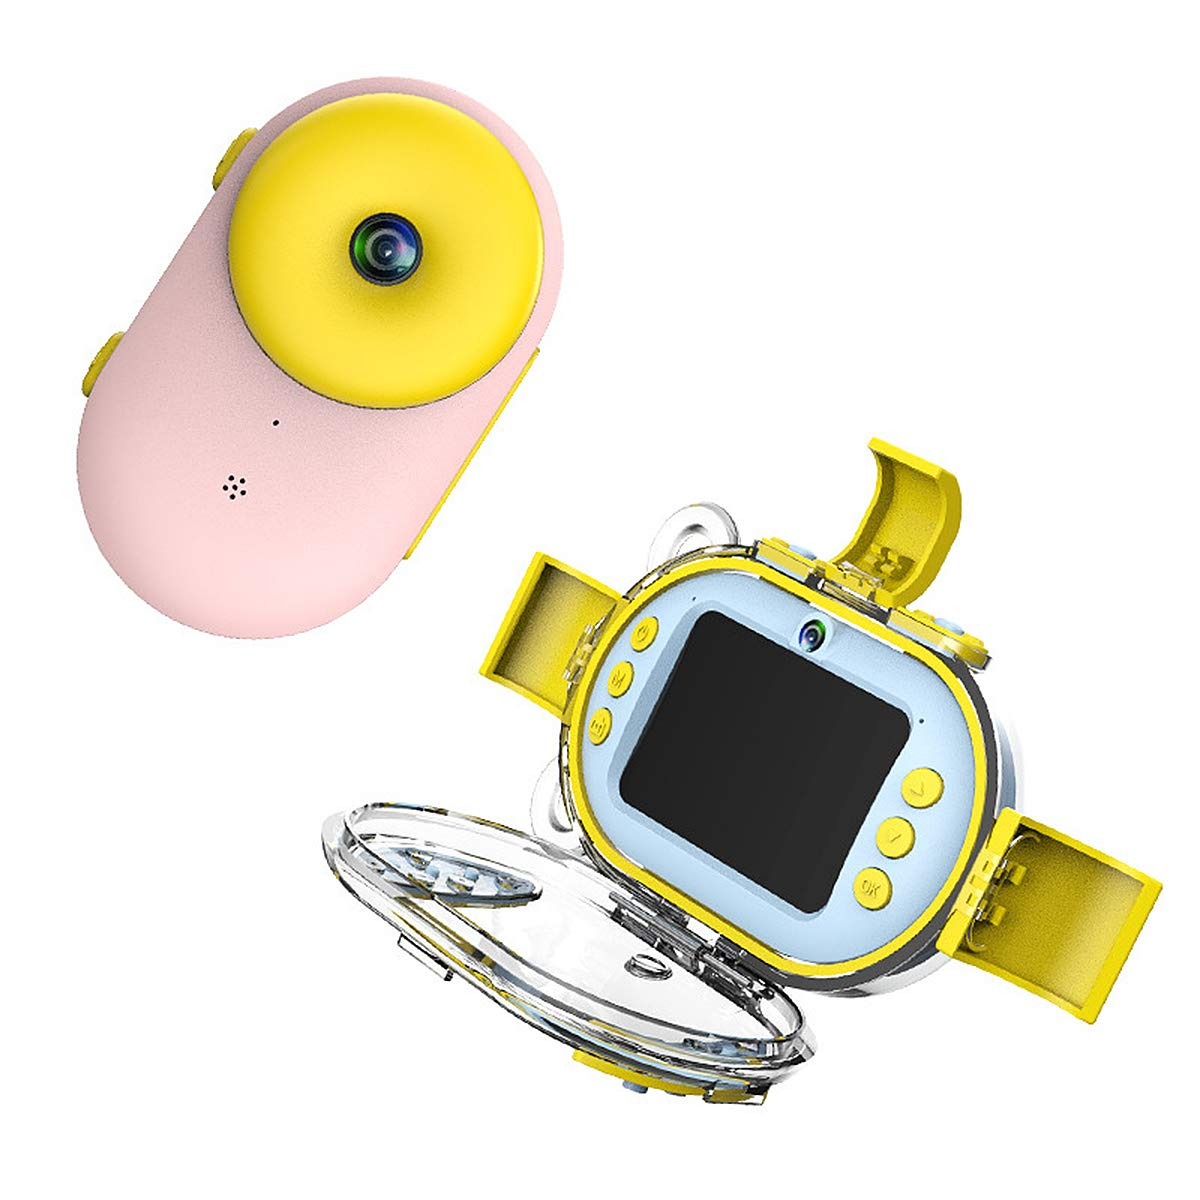 Aegilmc Child Waterproof WiFi Digital Camera, SLR Motion Double Lens Diving Camera, 800MP 1080P Kids Action Camera Sports Camcorder,Pink by Aegilmc (Image #1)